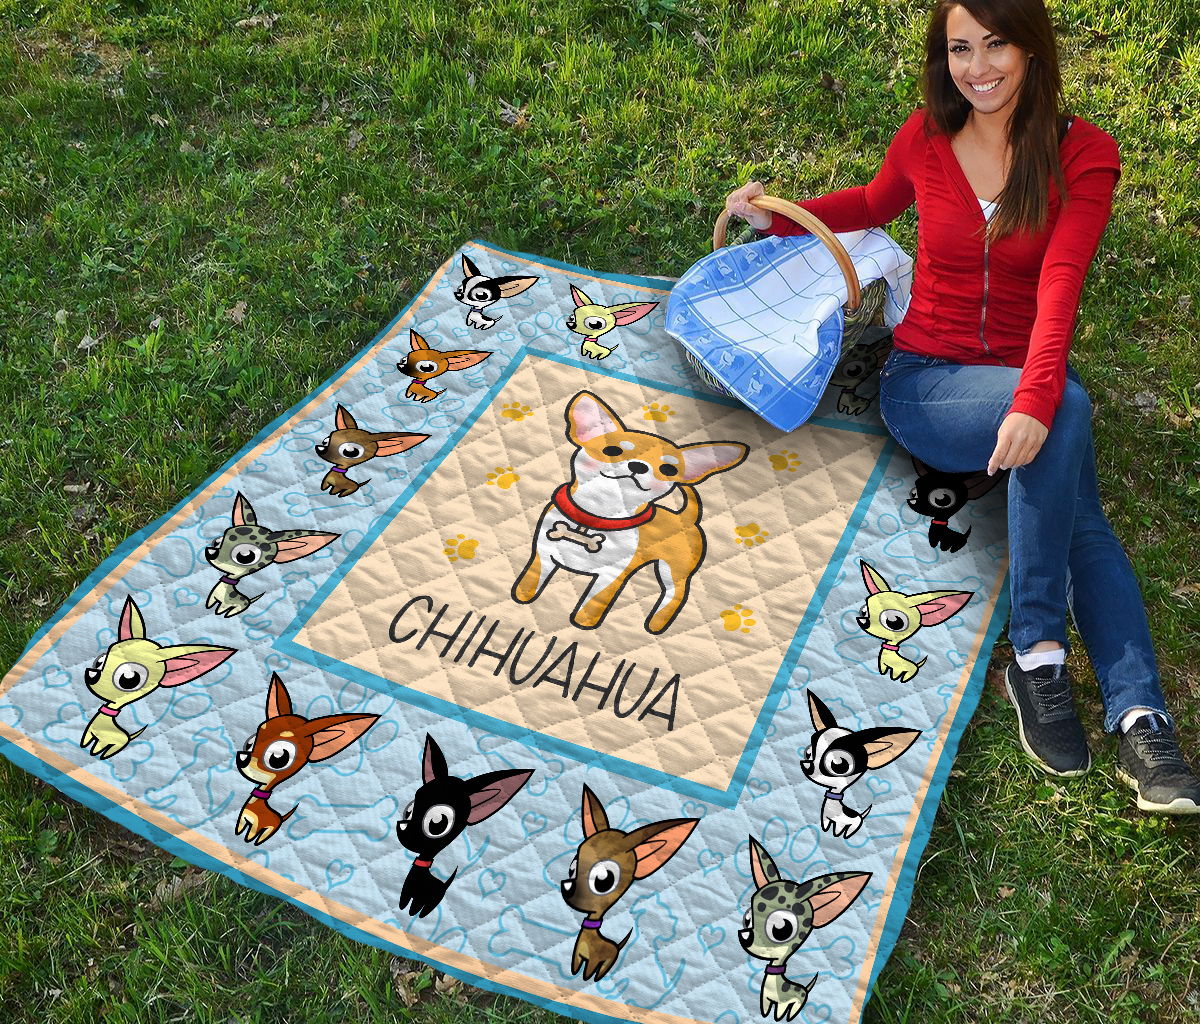 Baby chihuahua quilt 2